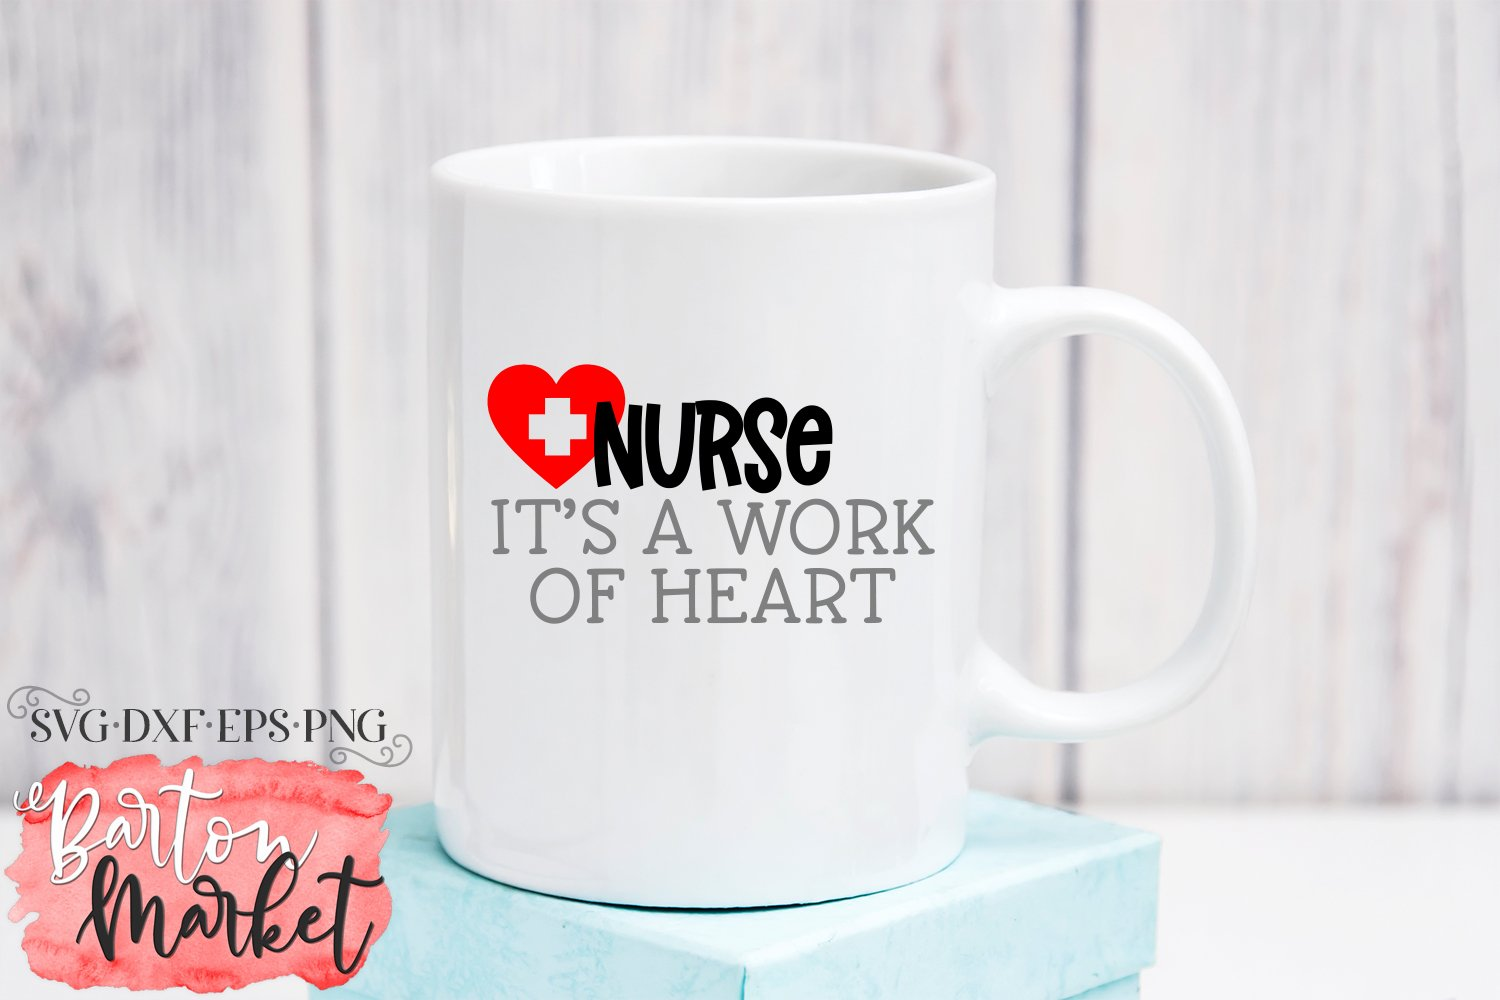 Nurse It's A Work Of Heart SVG DXF EPS PNG example image 2